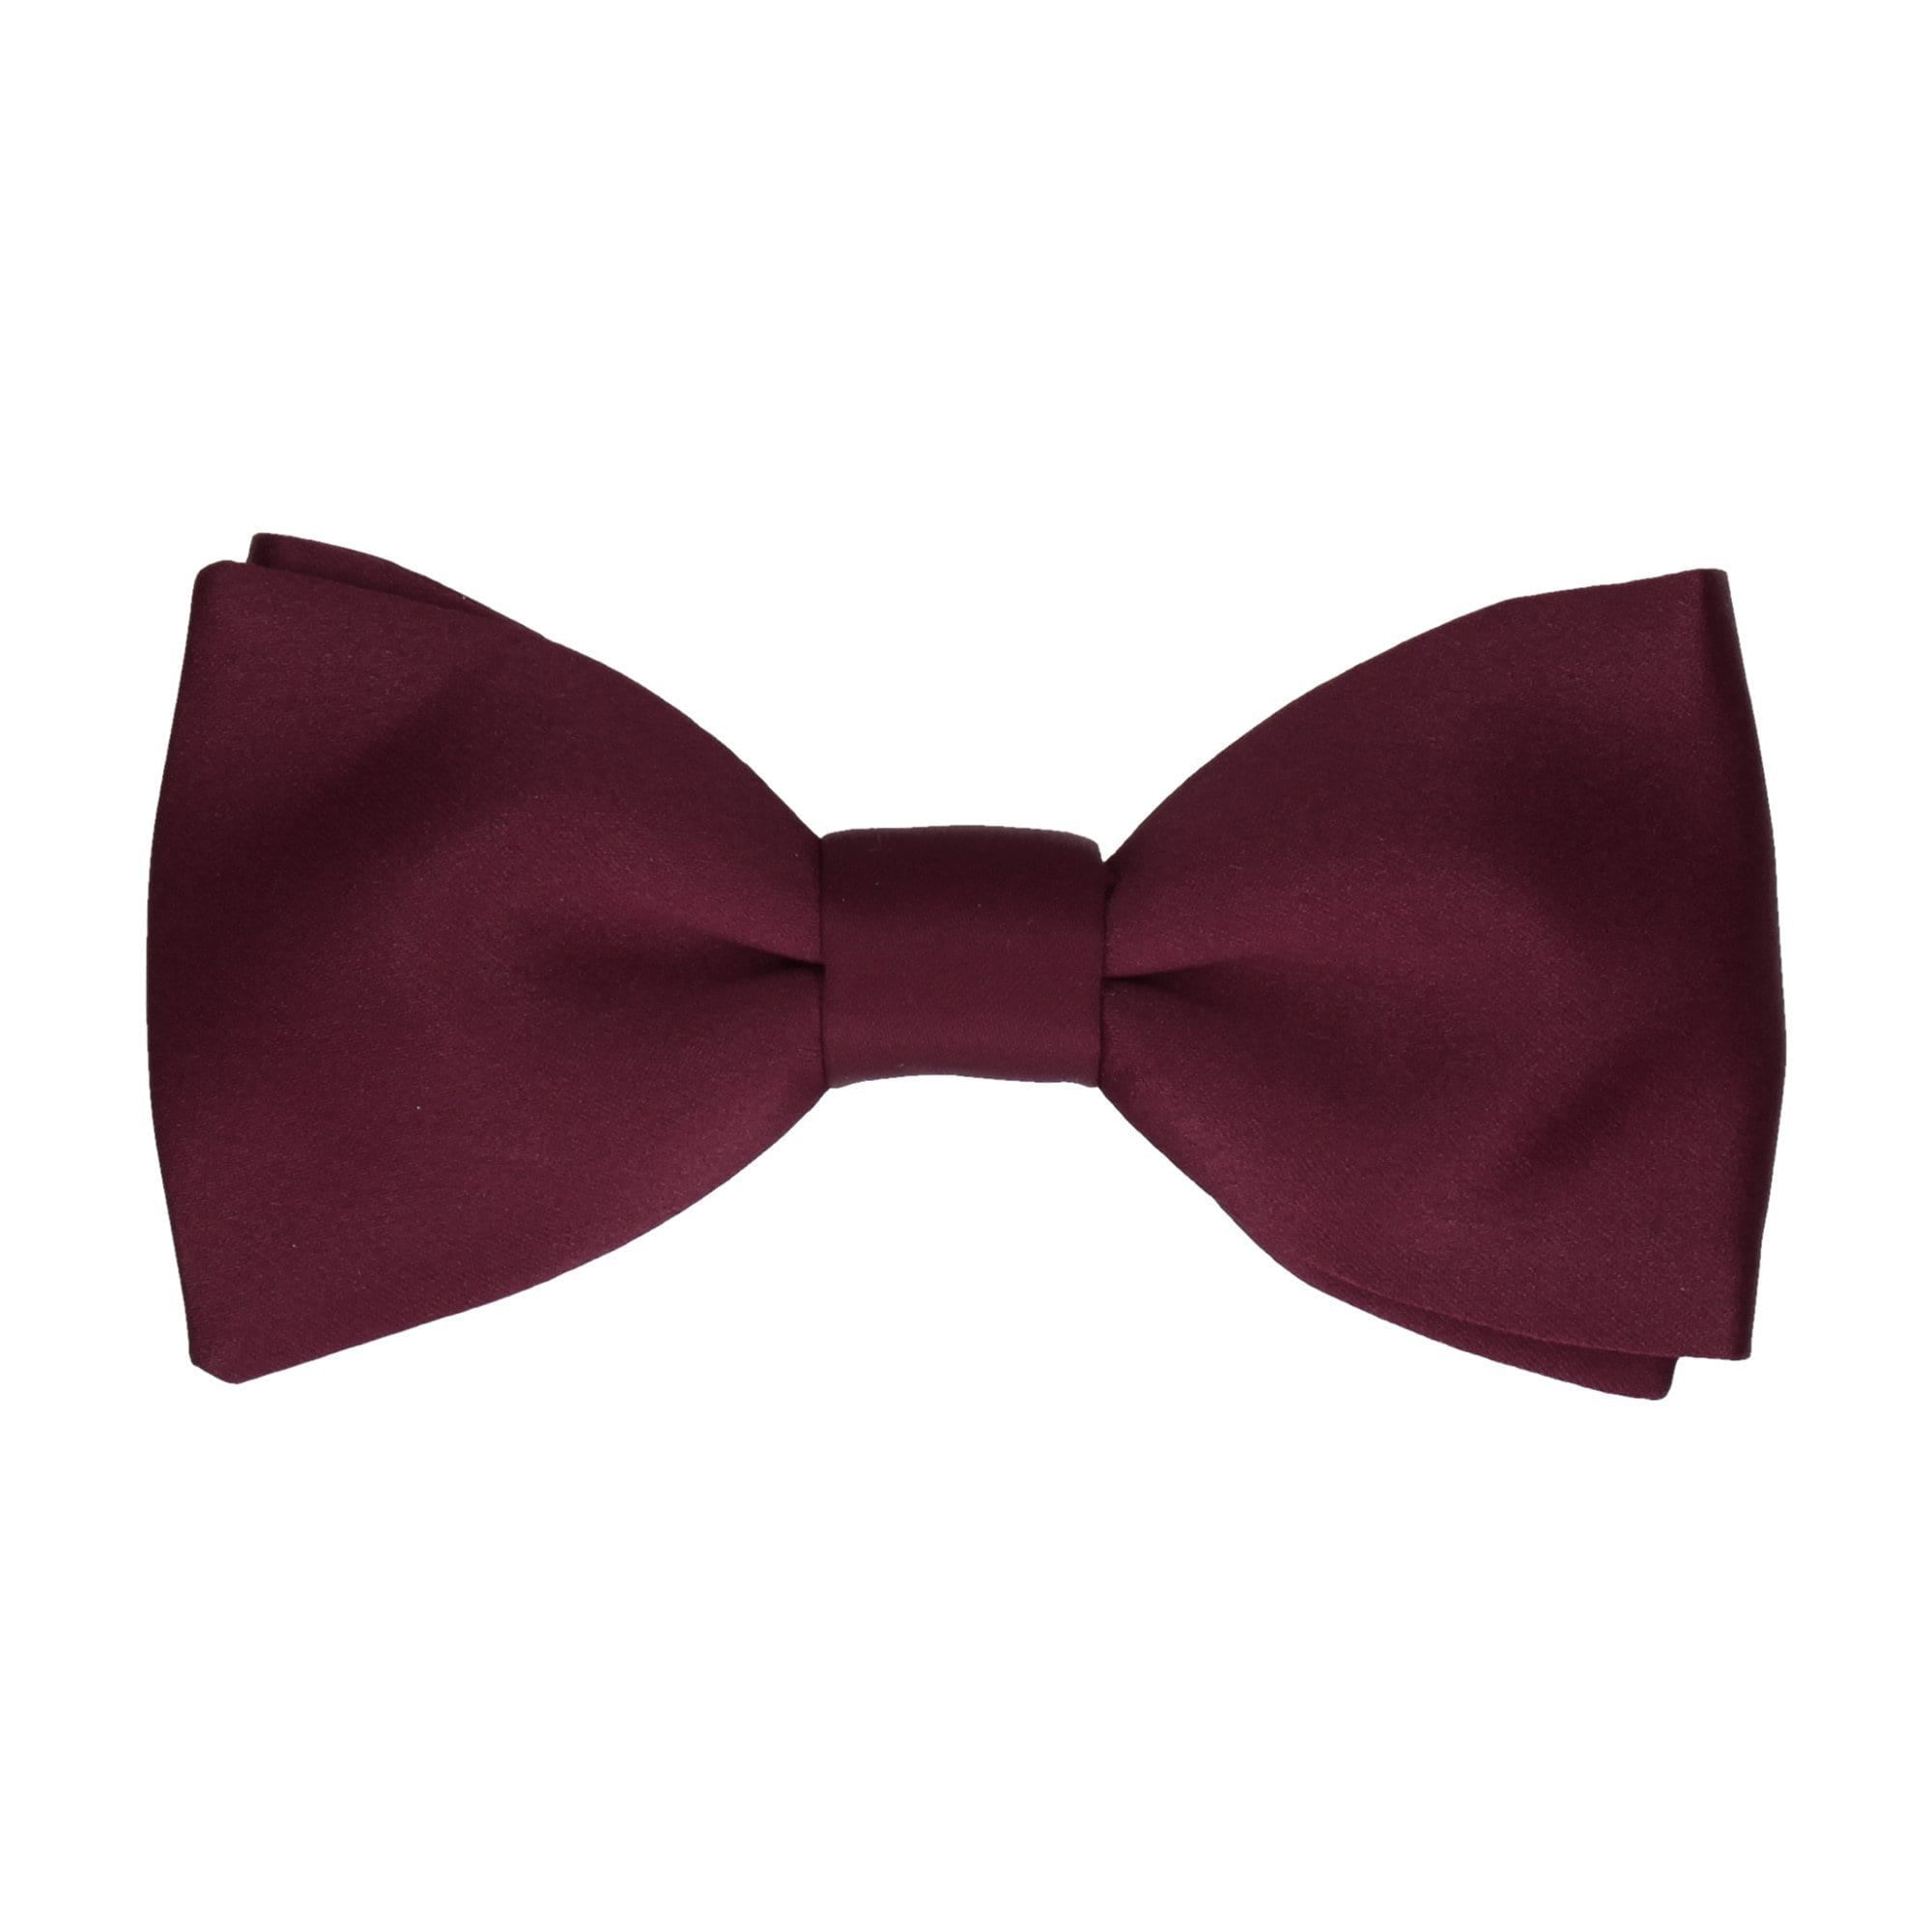 Dr Who Replica (Burgundy) Bow Tie